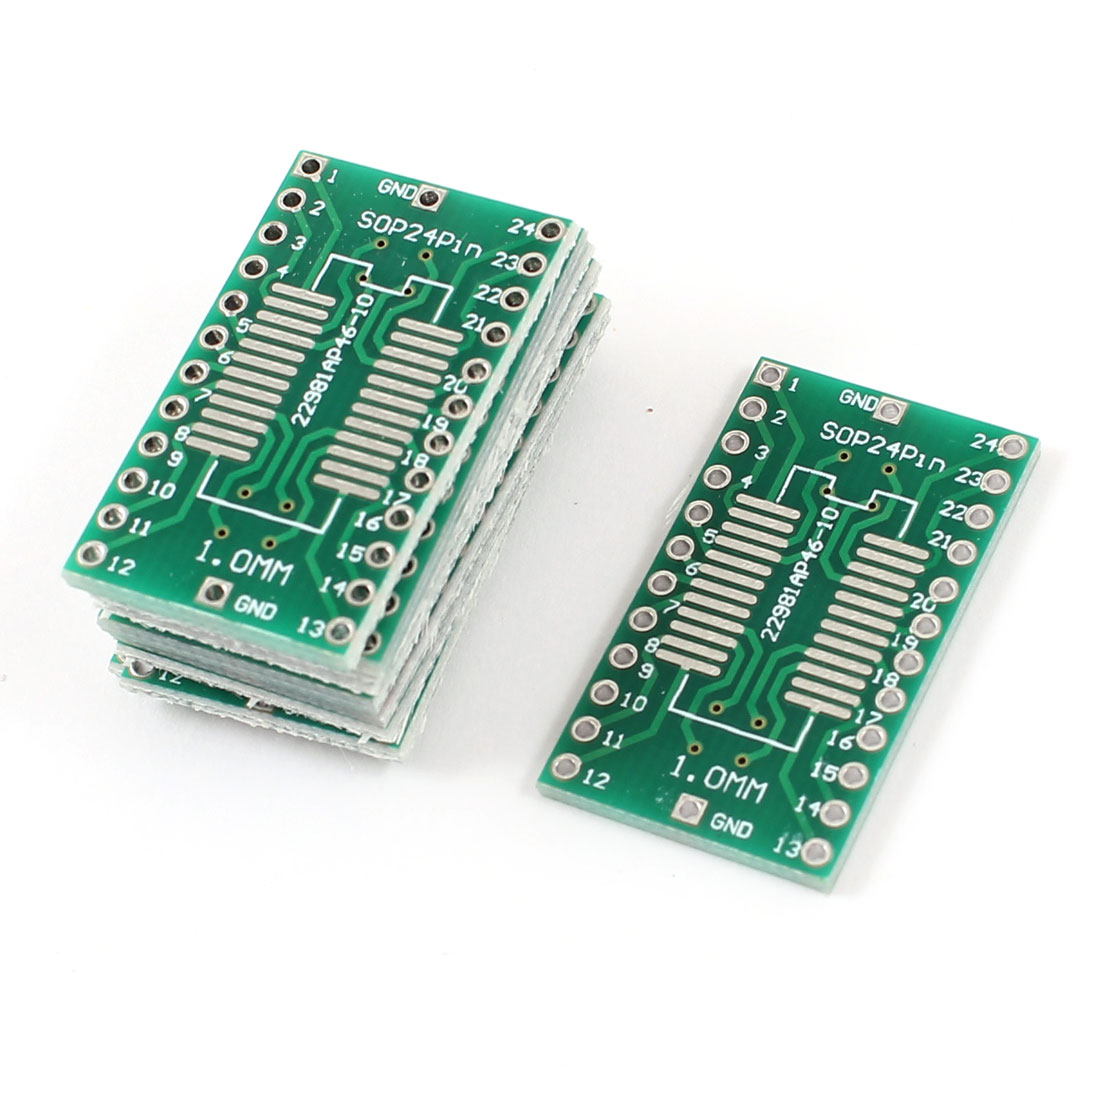 10 Pcs Double Side SOP24Pin to SSOP24Pin 1.0mm Pitch PCB Circuit Universal Board